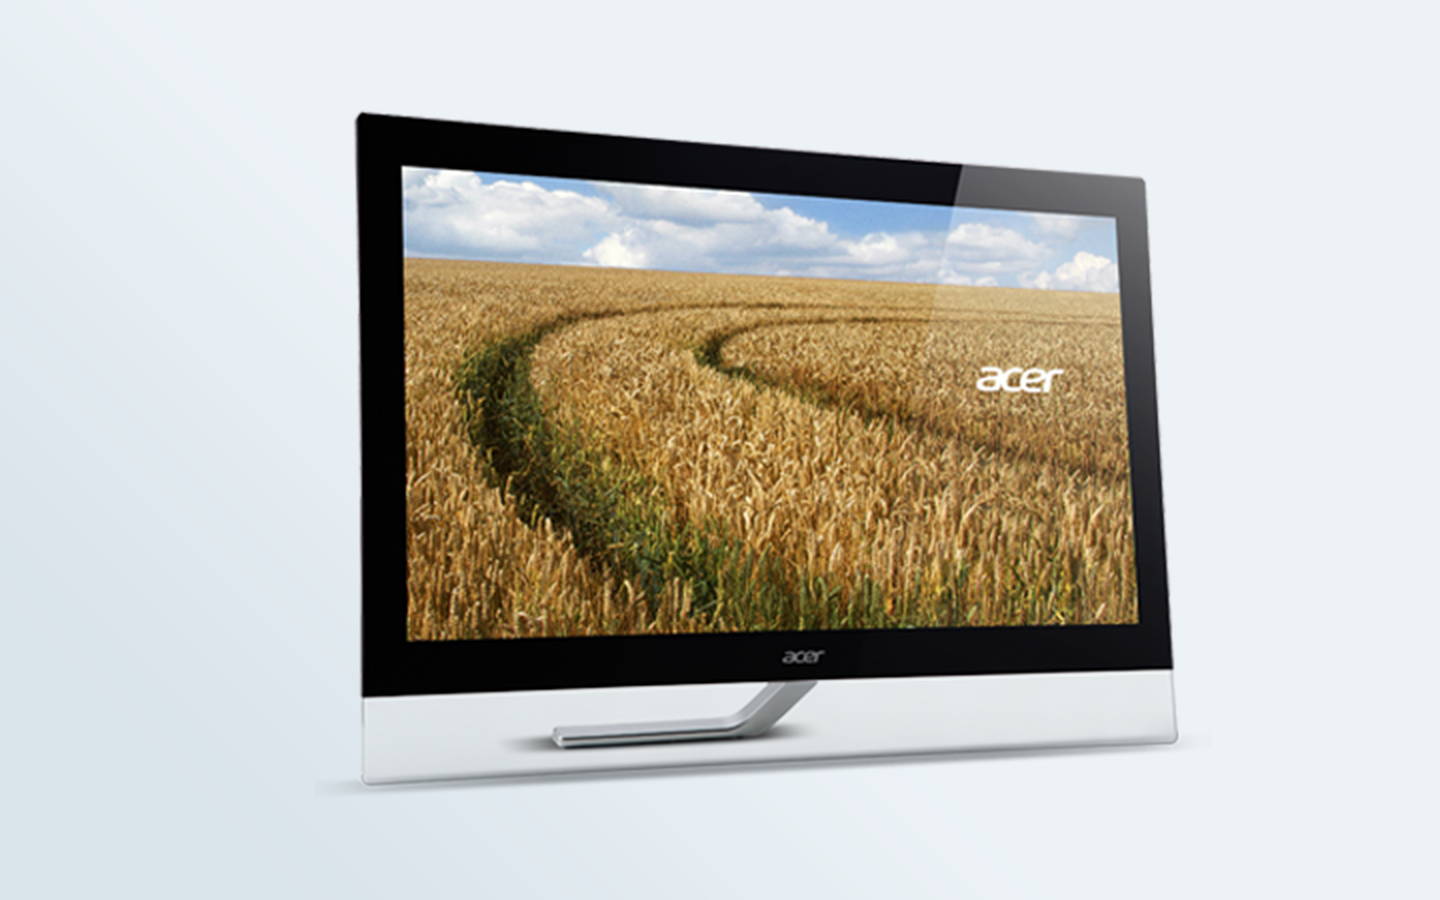 Best Touch Screen Monitors 2019 - Computer Monitor Reviews | Top Ten